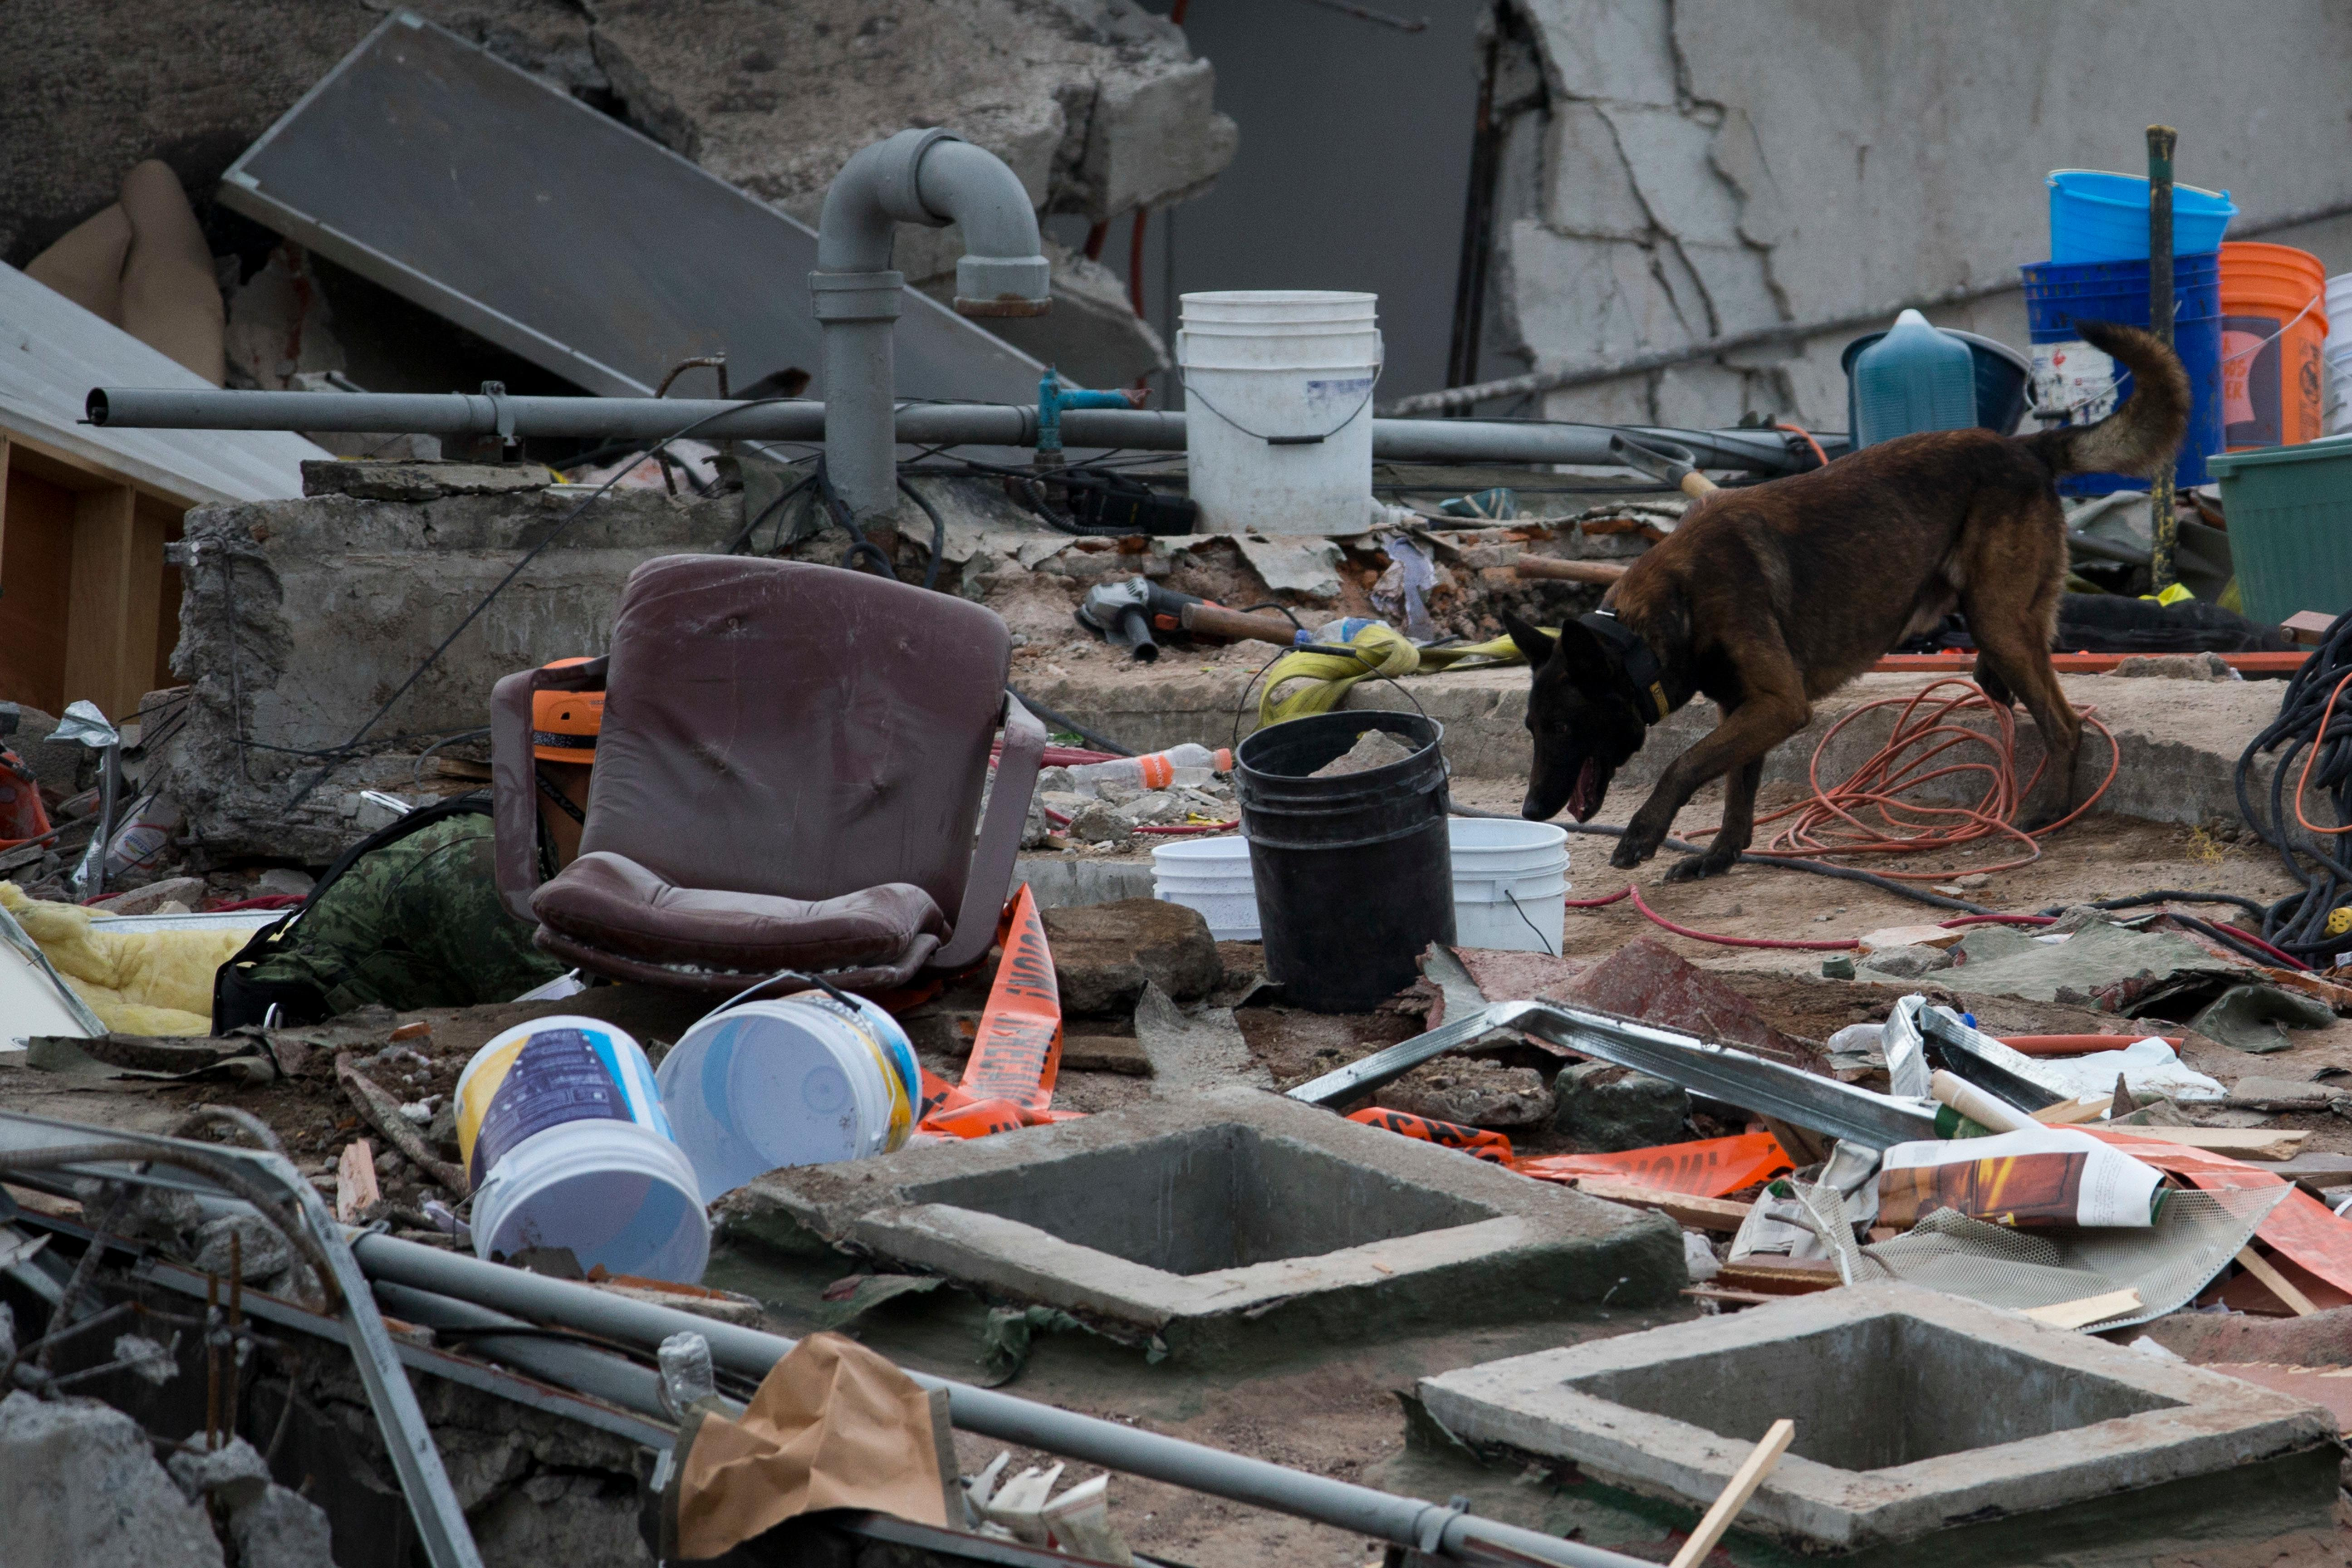 A rescue dog works on the site of a felled office building in the Roma Norte neighborhood in Mexico City, Saturday, Sept. 23, 2017. As earthquake rescue operations stretched into Day 5, Mexico City residents throughout the city held out hope that dozens still missing might be found alive. (AP Photo/Moises Castillo)